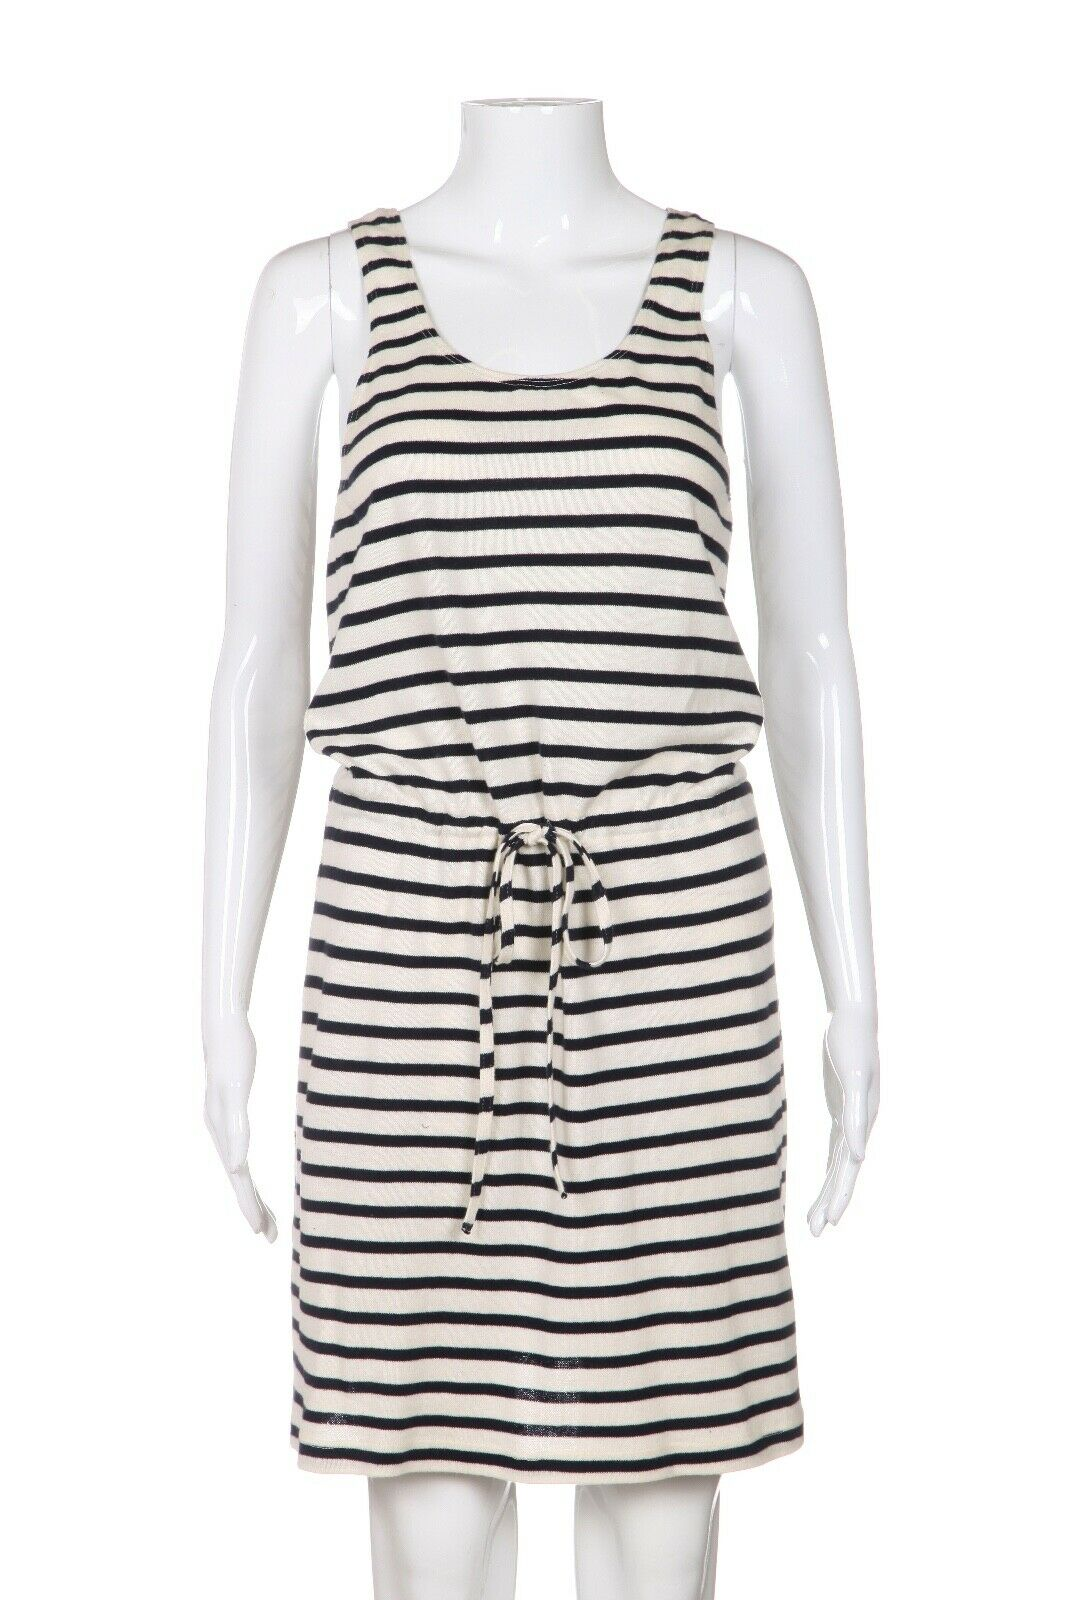 FAHERTY Knit Striped Drawstring Dress Size XS